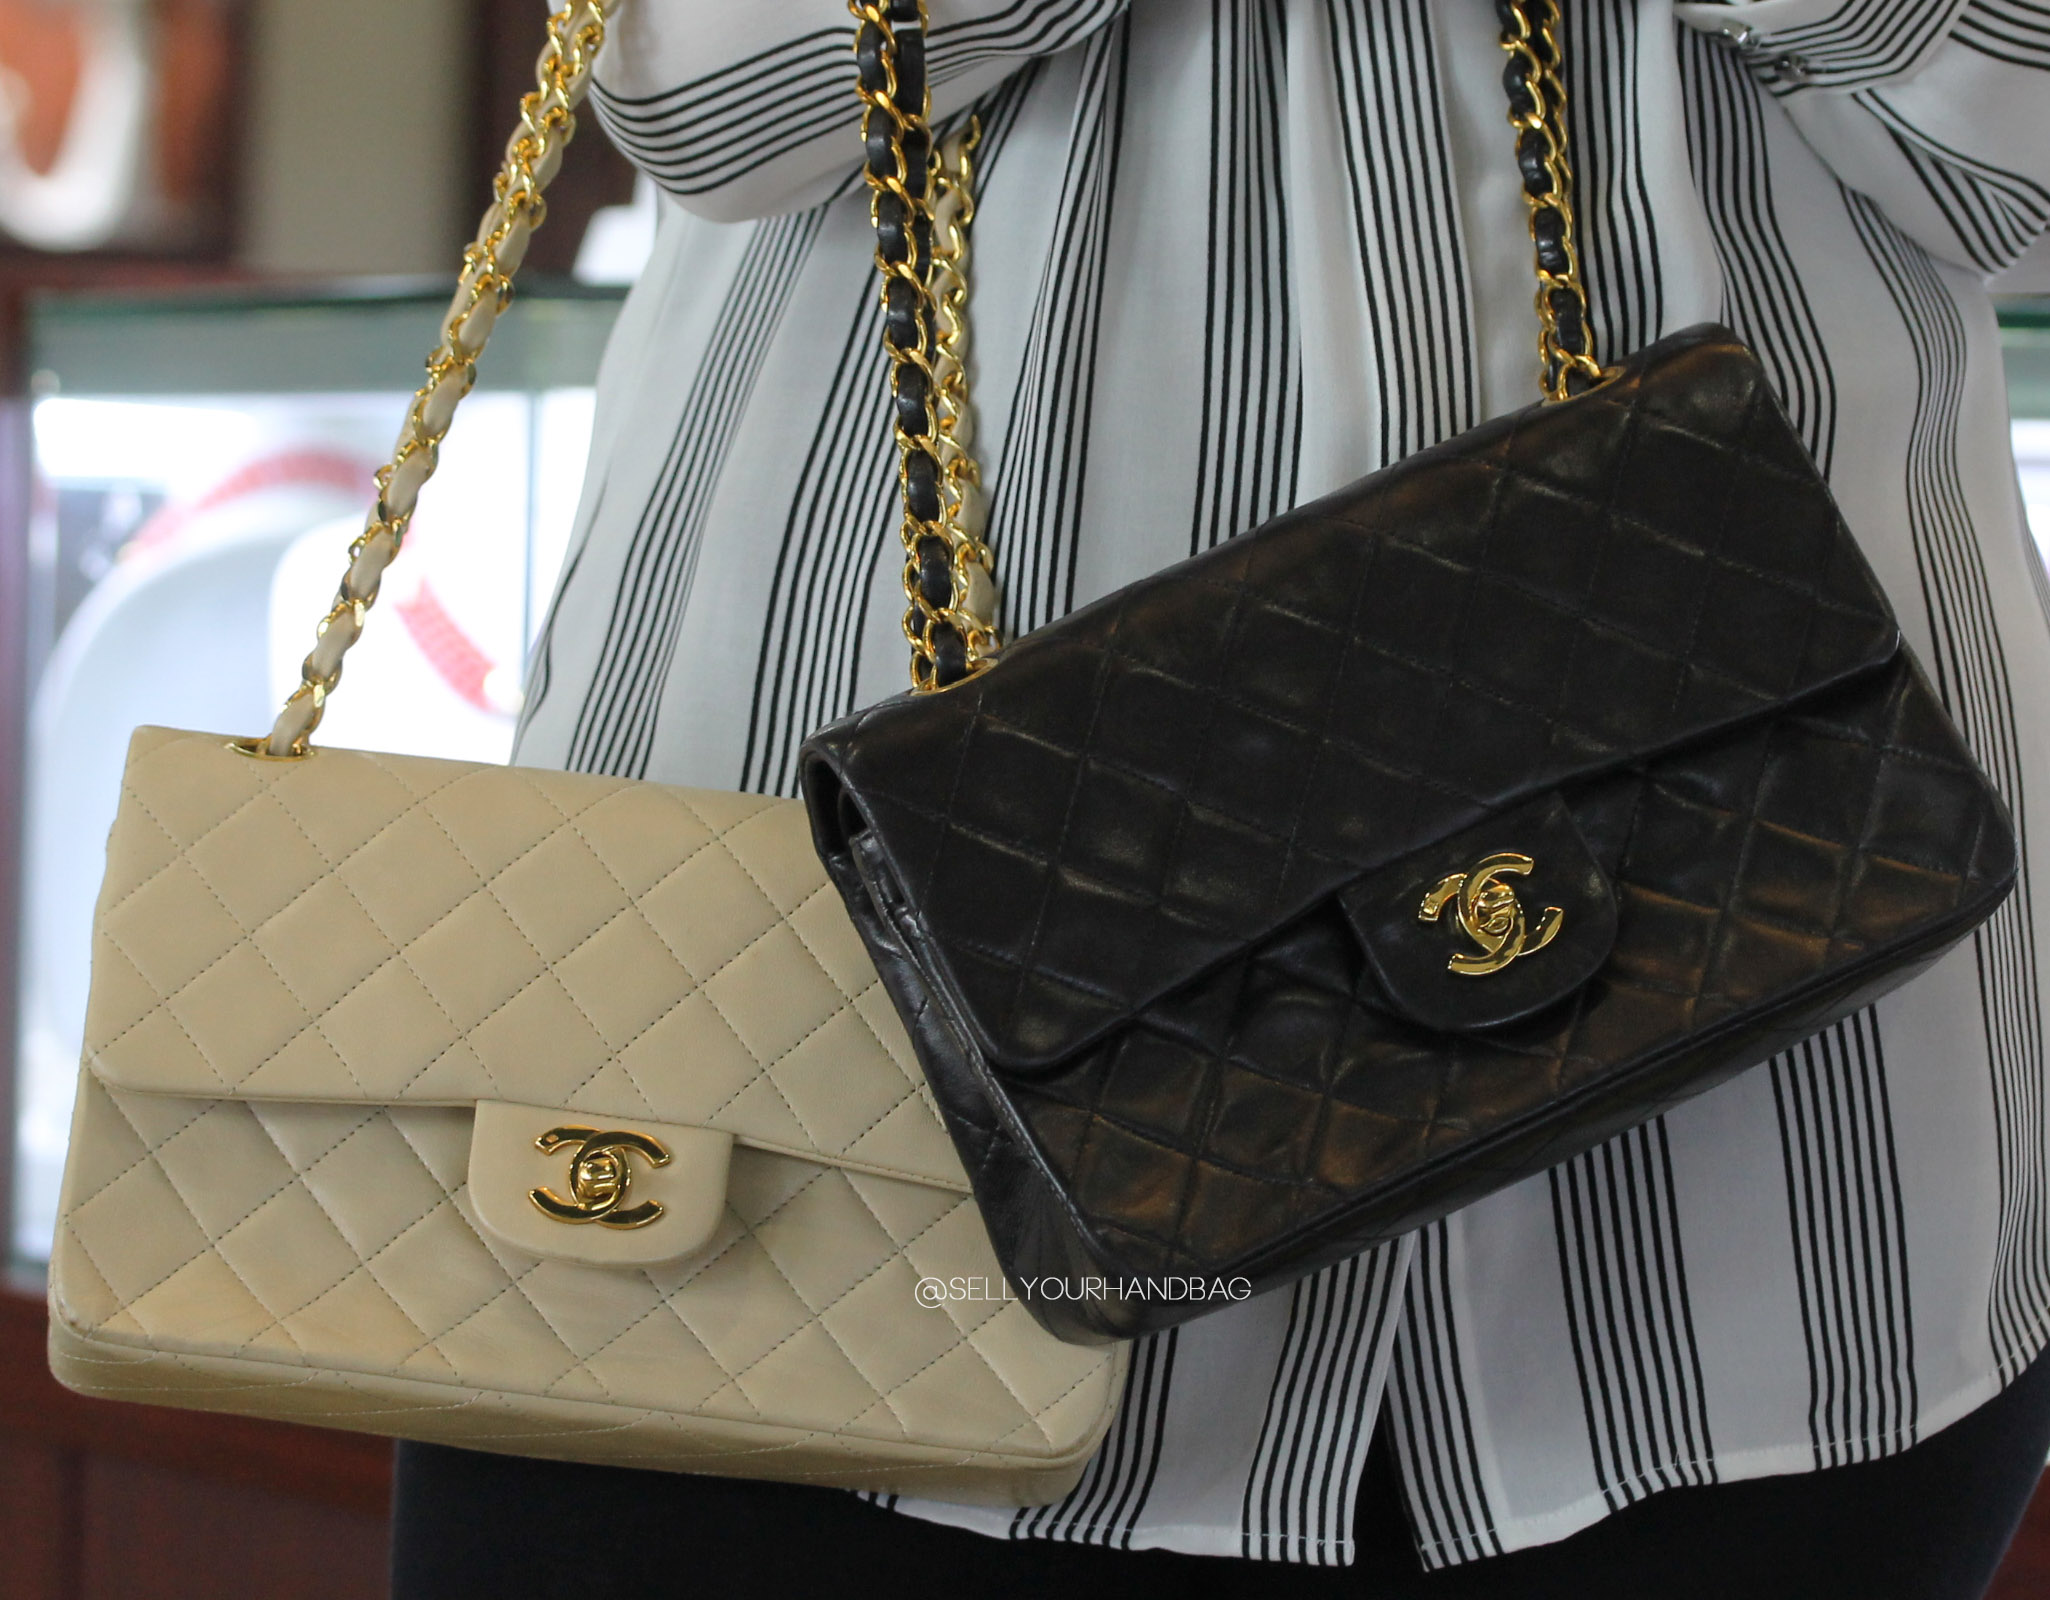 How To Spot A Fake Chanel Flap Bag